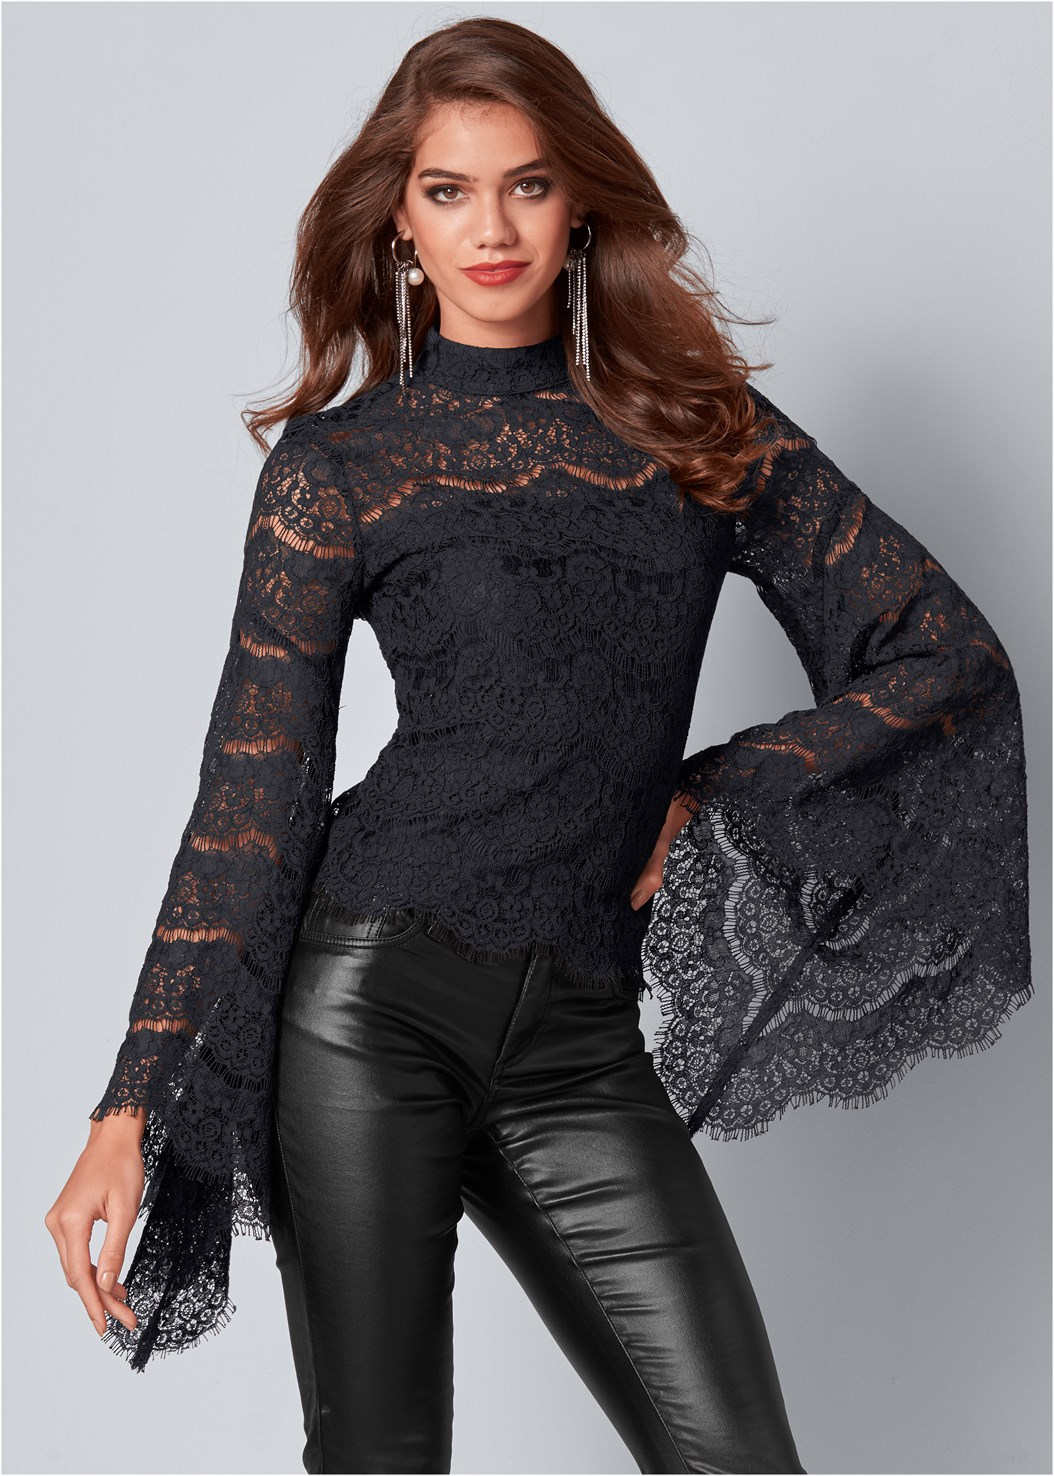 Lace Bell Sleeve Top,Faux Leather Pants,Tie Back Boots,Rhinestone Fringe Earrings